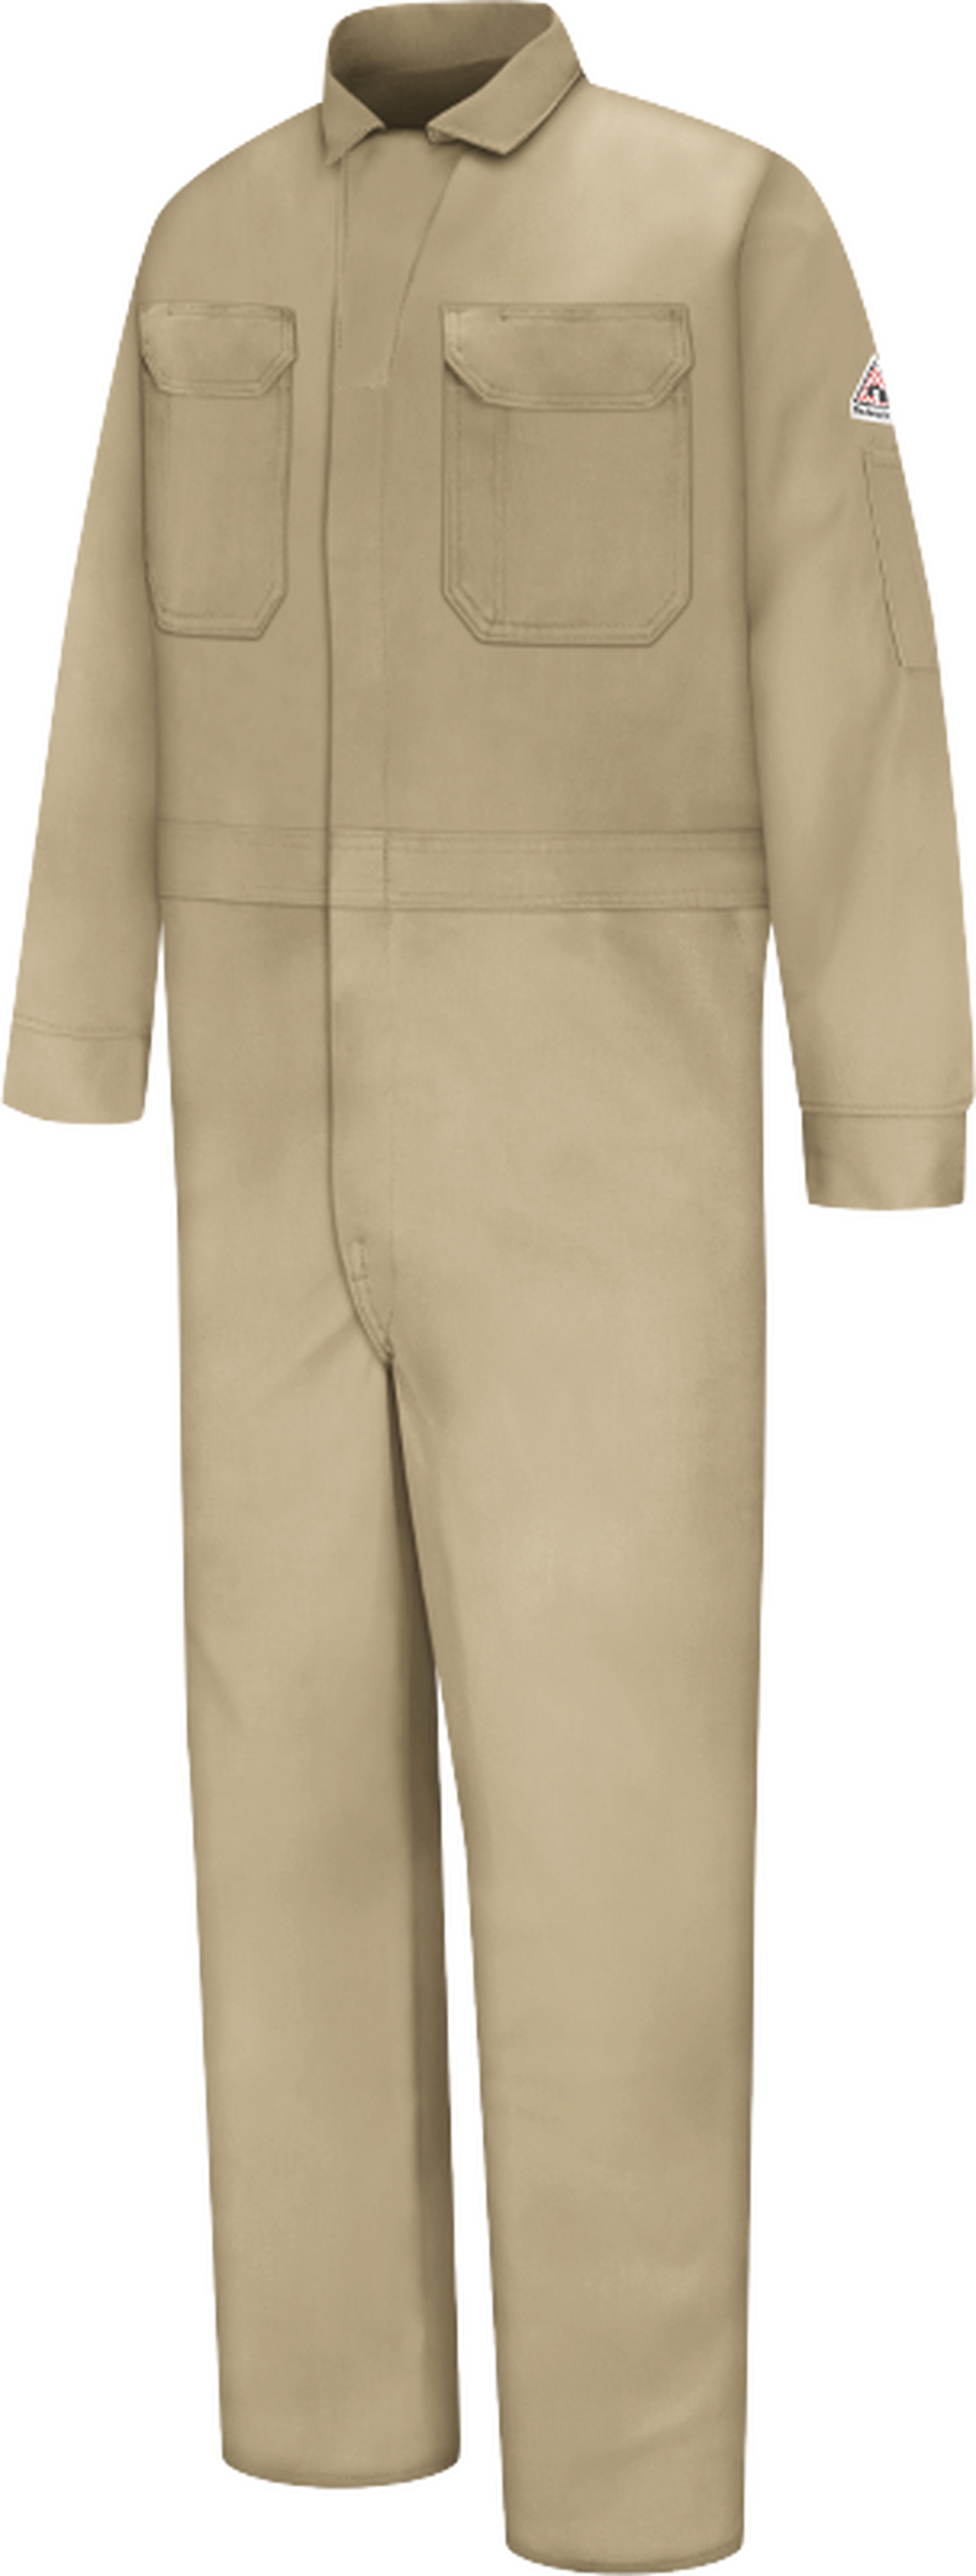 Men's Midweight Excel FR Deluxe Coverall